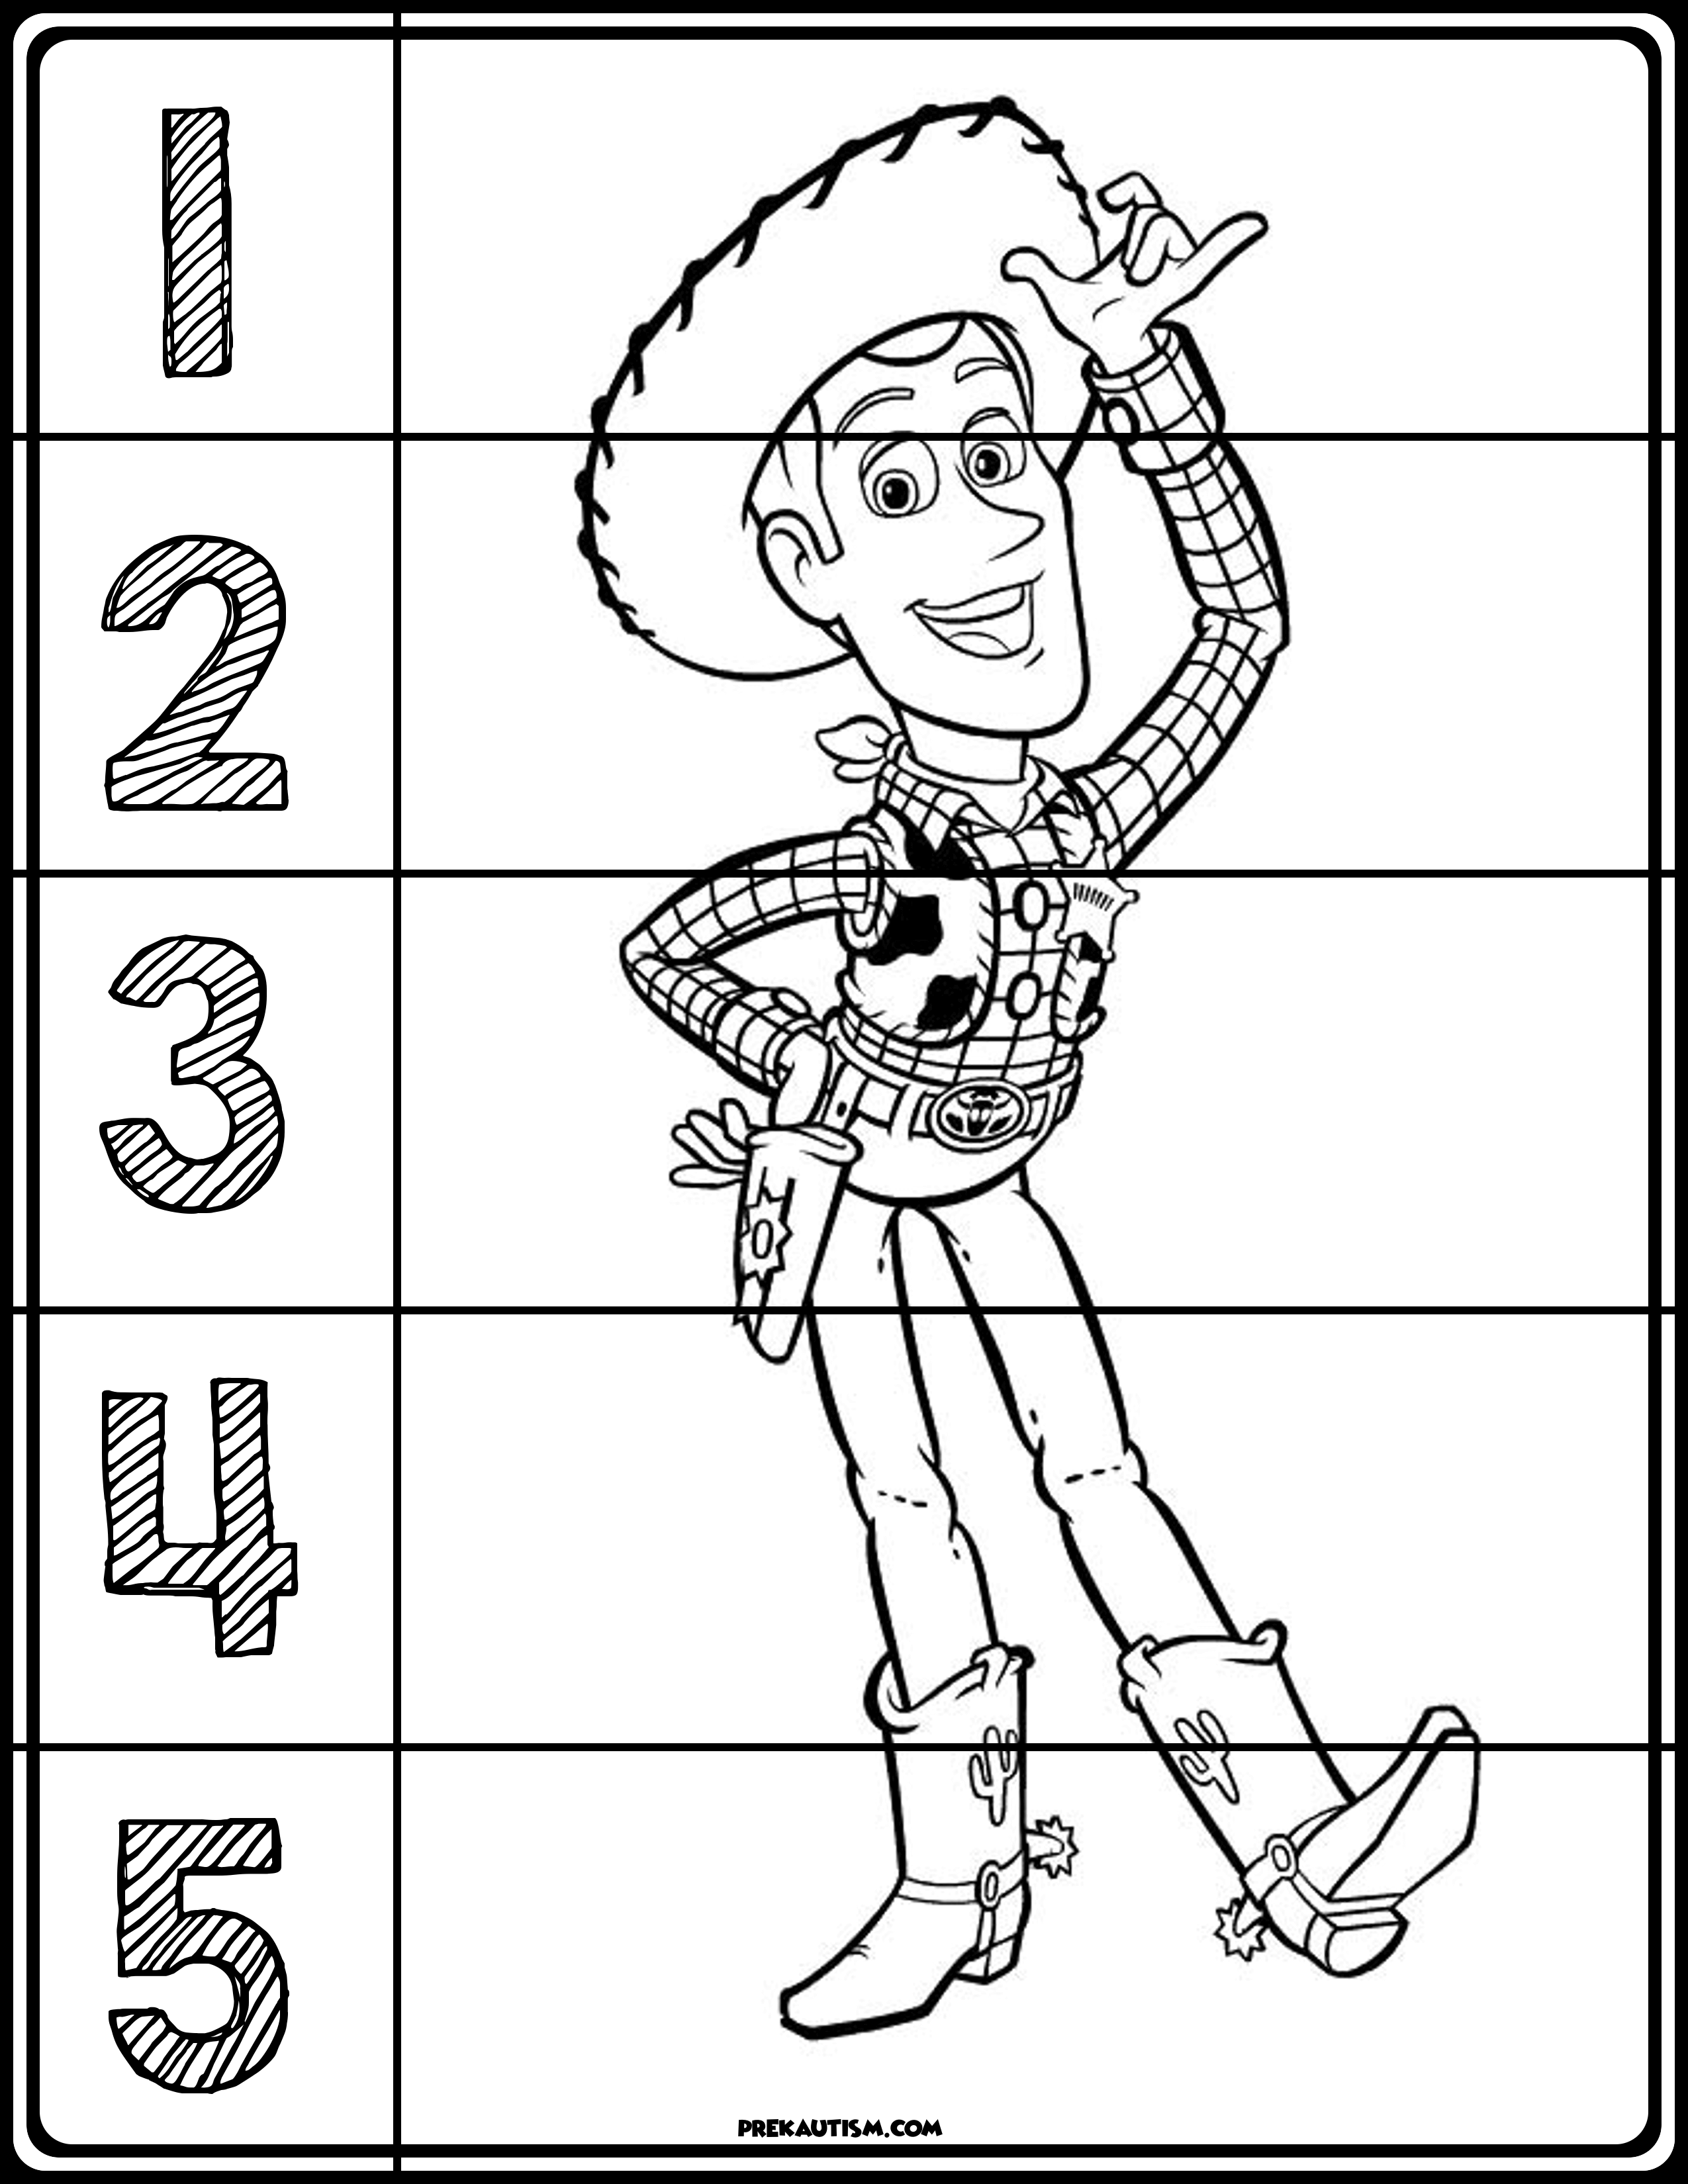 Toy Story Puzzles Toy Story Crafts Toy Story Preschool Toys